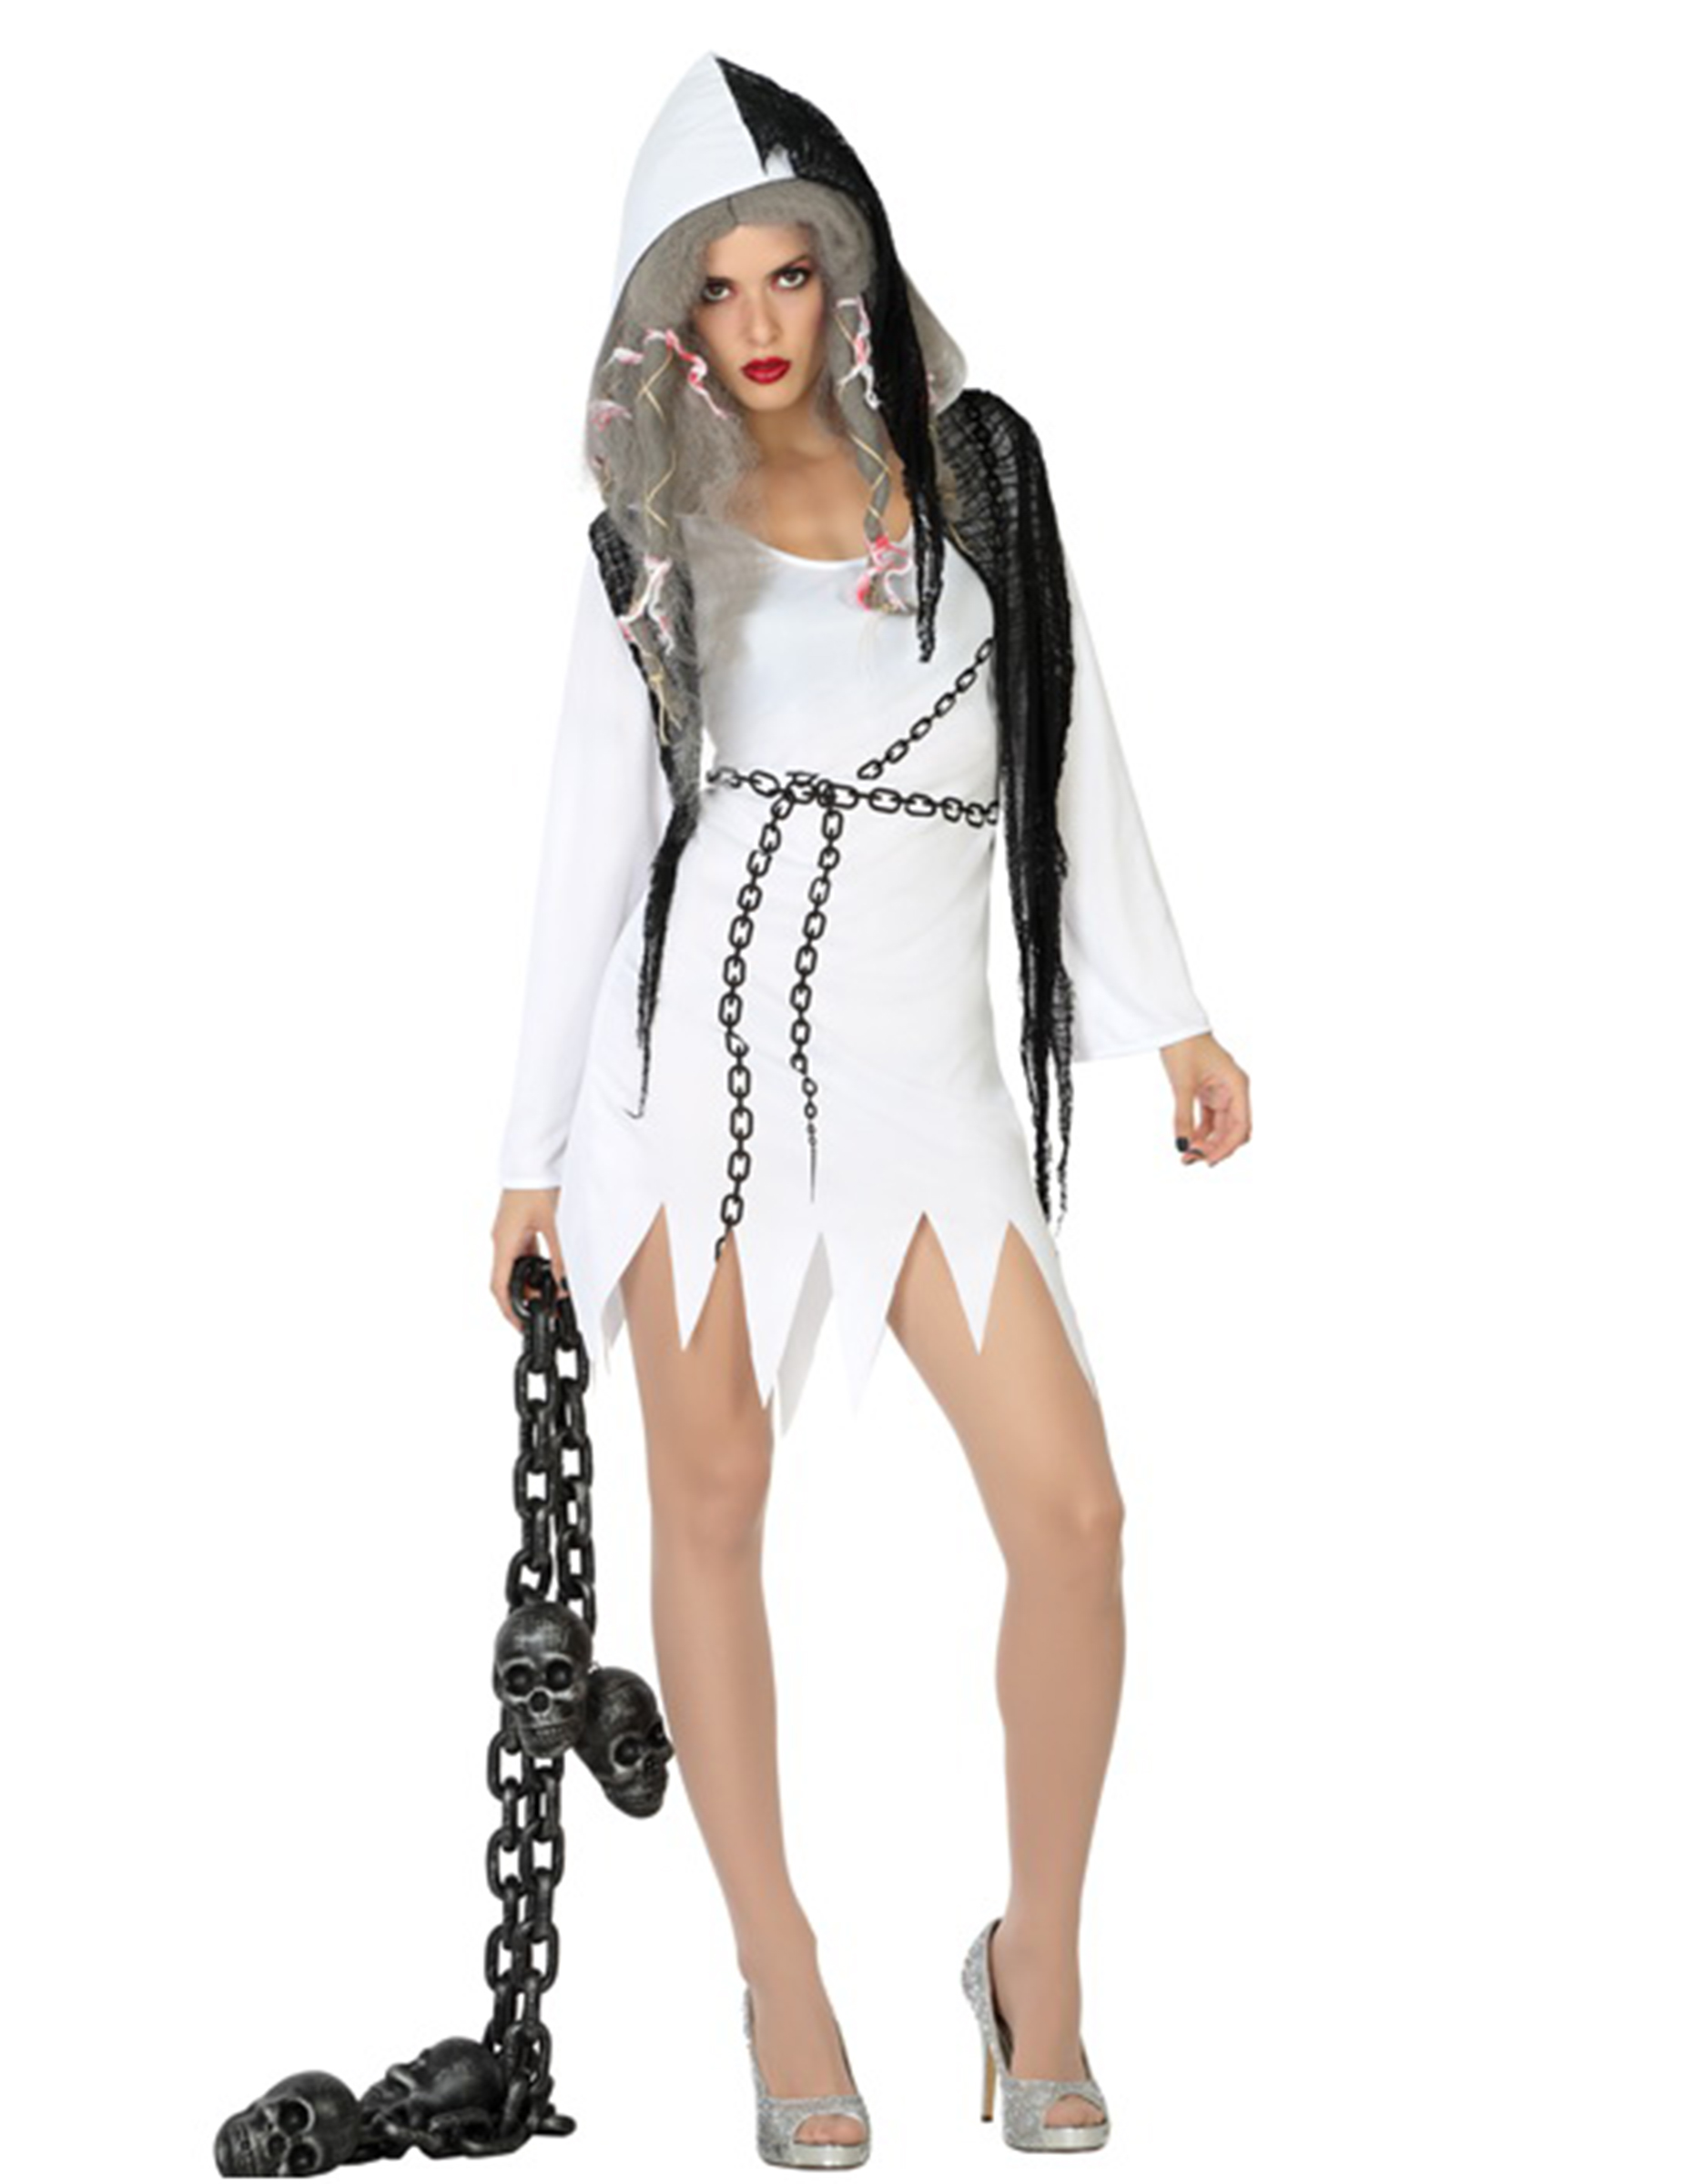 Halloween Gespenster Servietten Sexy Gespenster Kostüm Für Damen Halloween